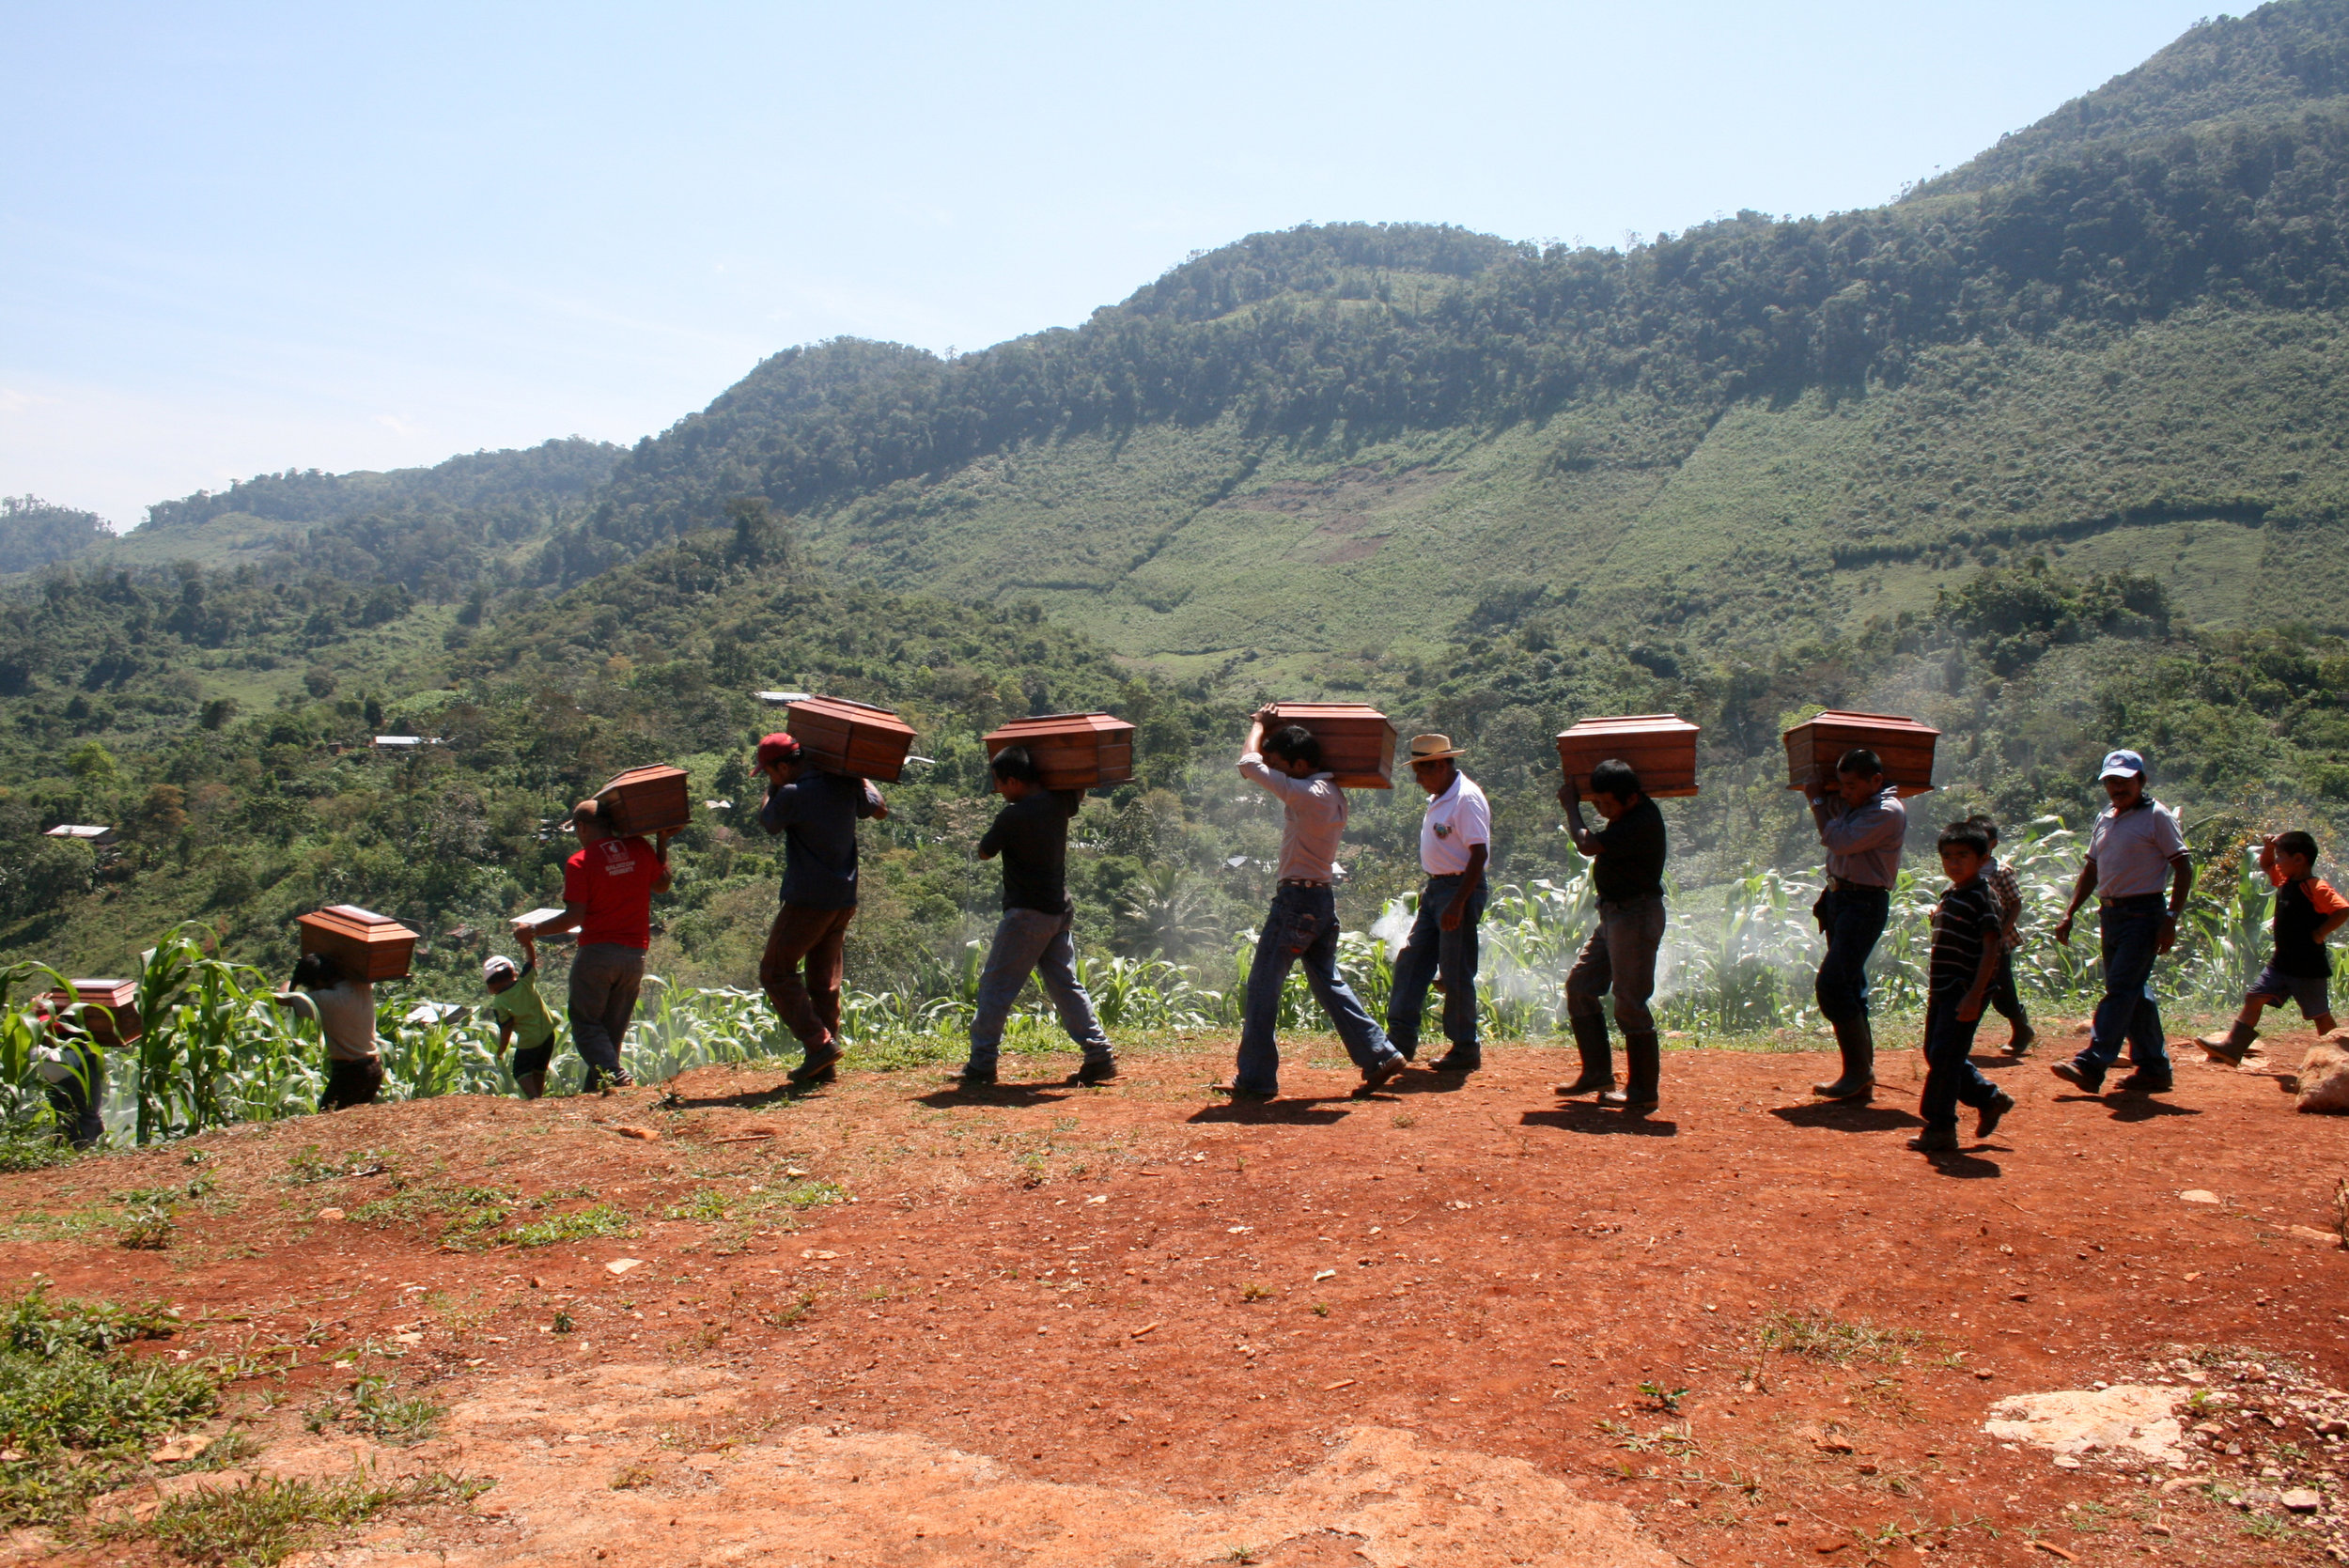 Ixil people carrying their loved ones' remains after an exhumation in the Ixil Triangle in February 2012.